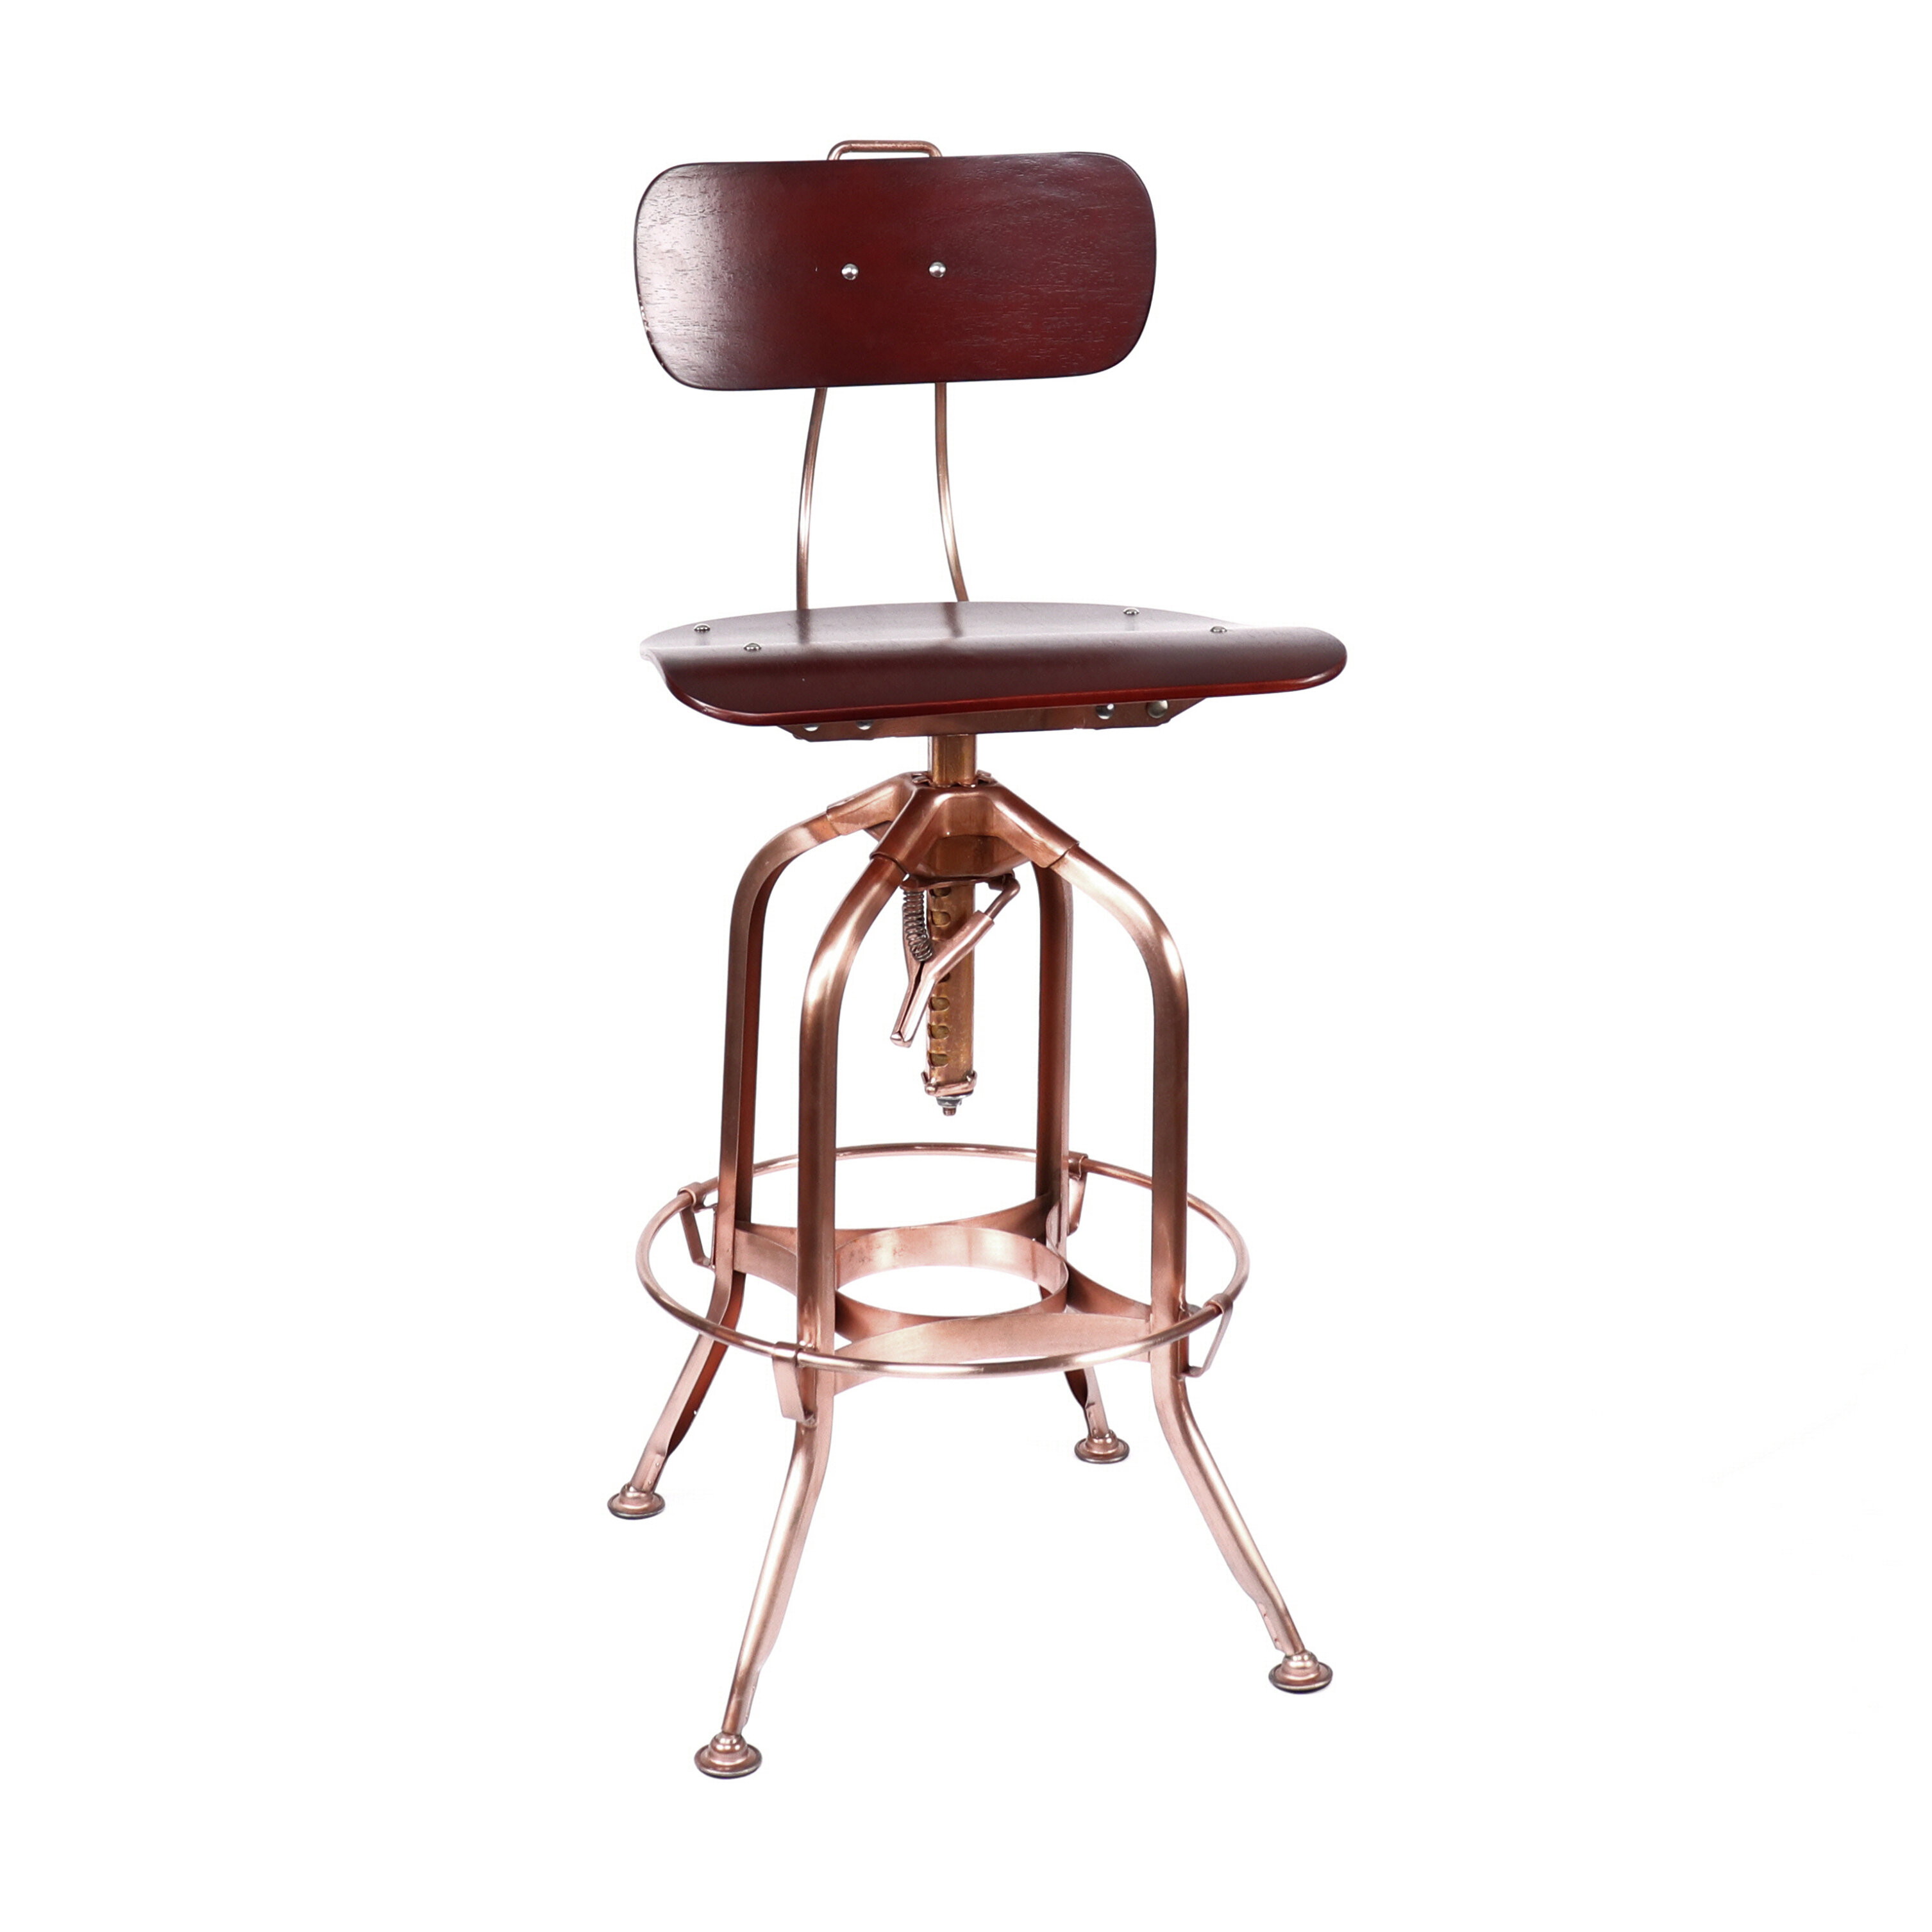 Peachy Desrochers Back Adjustable Height Swivel Bar Stool Squirreltailoven Fun Painted Chair Ideas Images Squirreltailovenorg